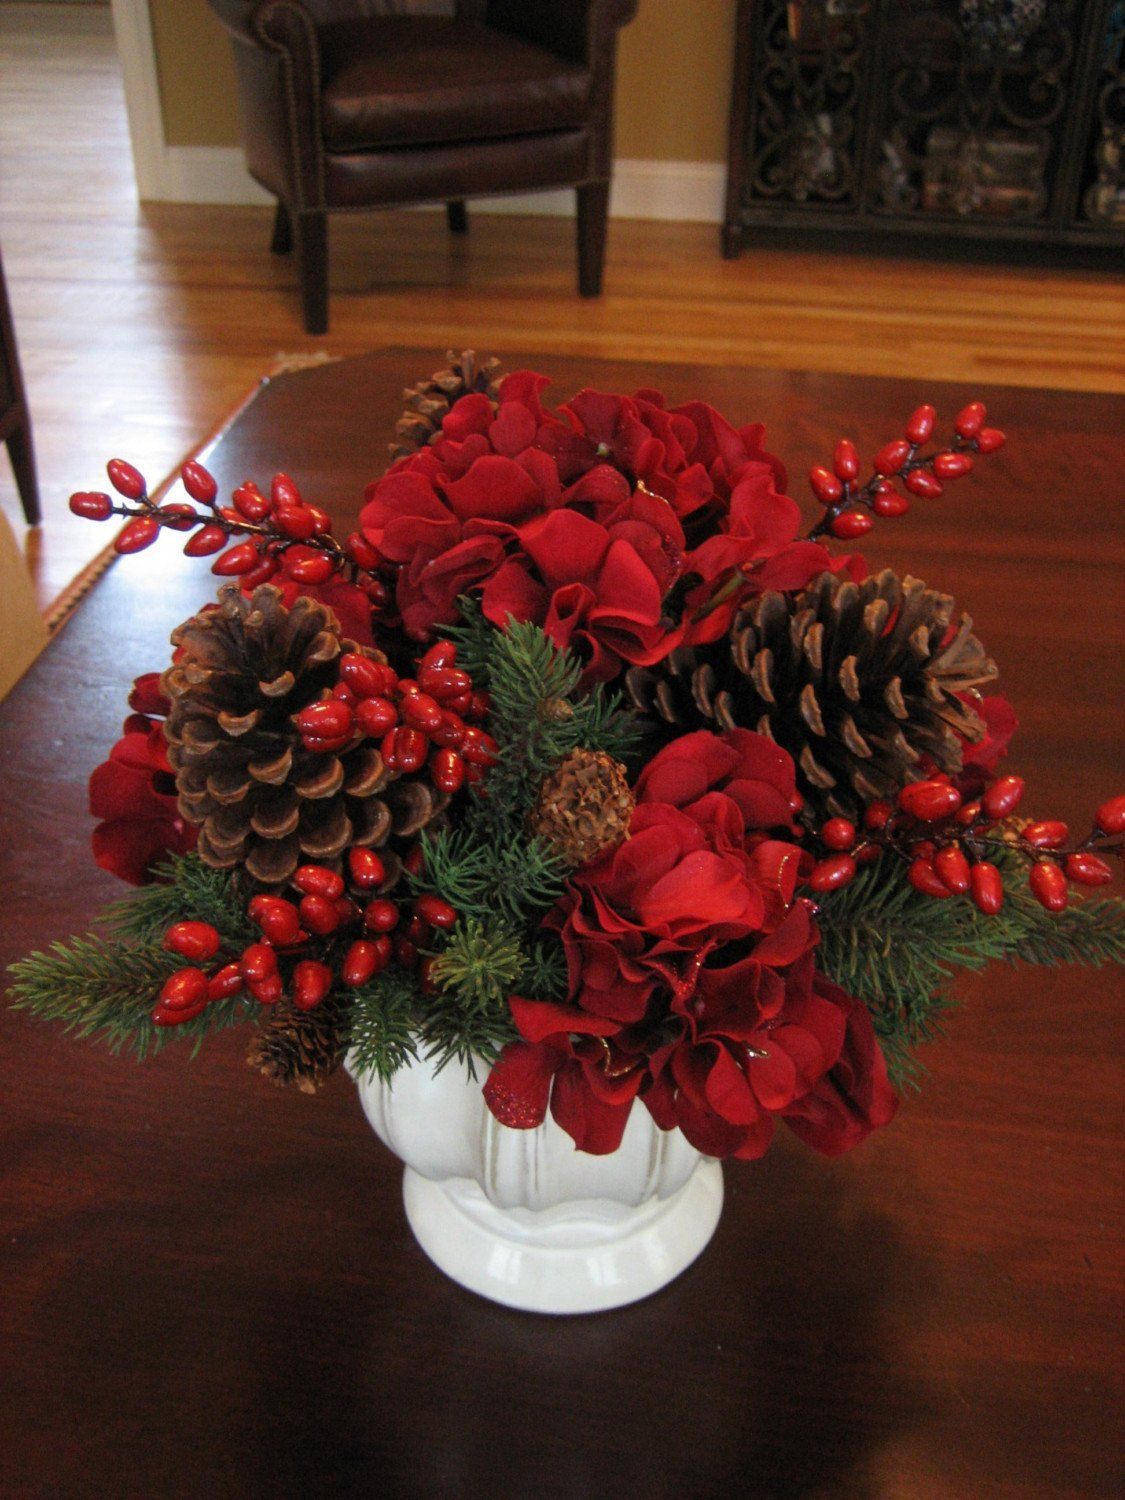 Flowers-and-table-for-christmas-2015-centro-con-flores-rojas-y-piñas